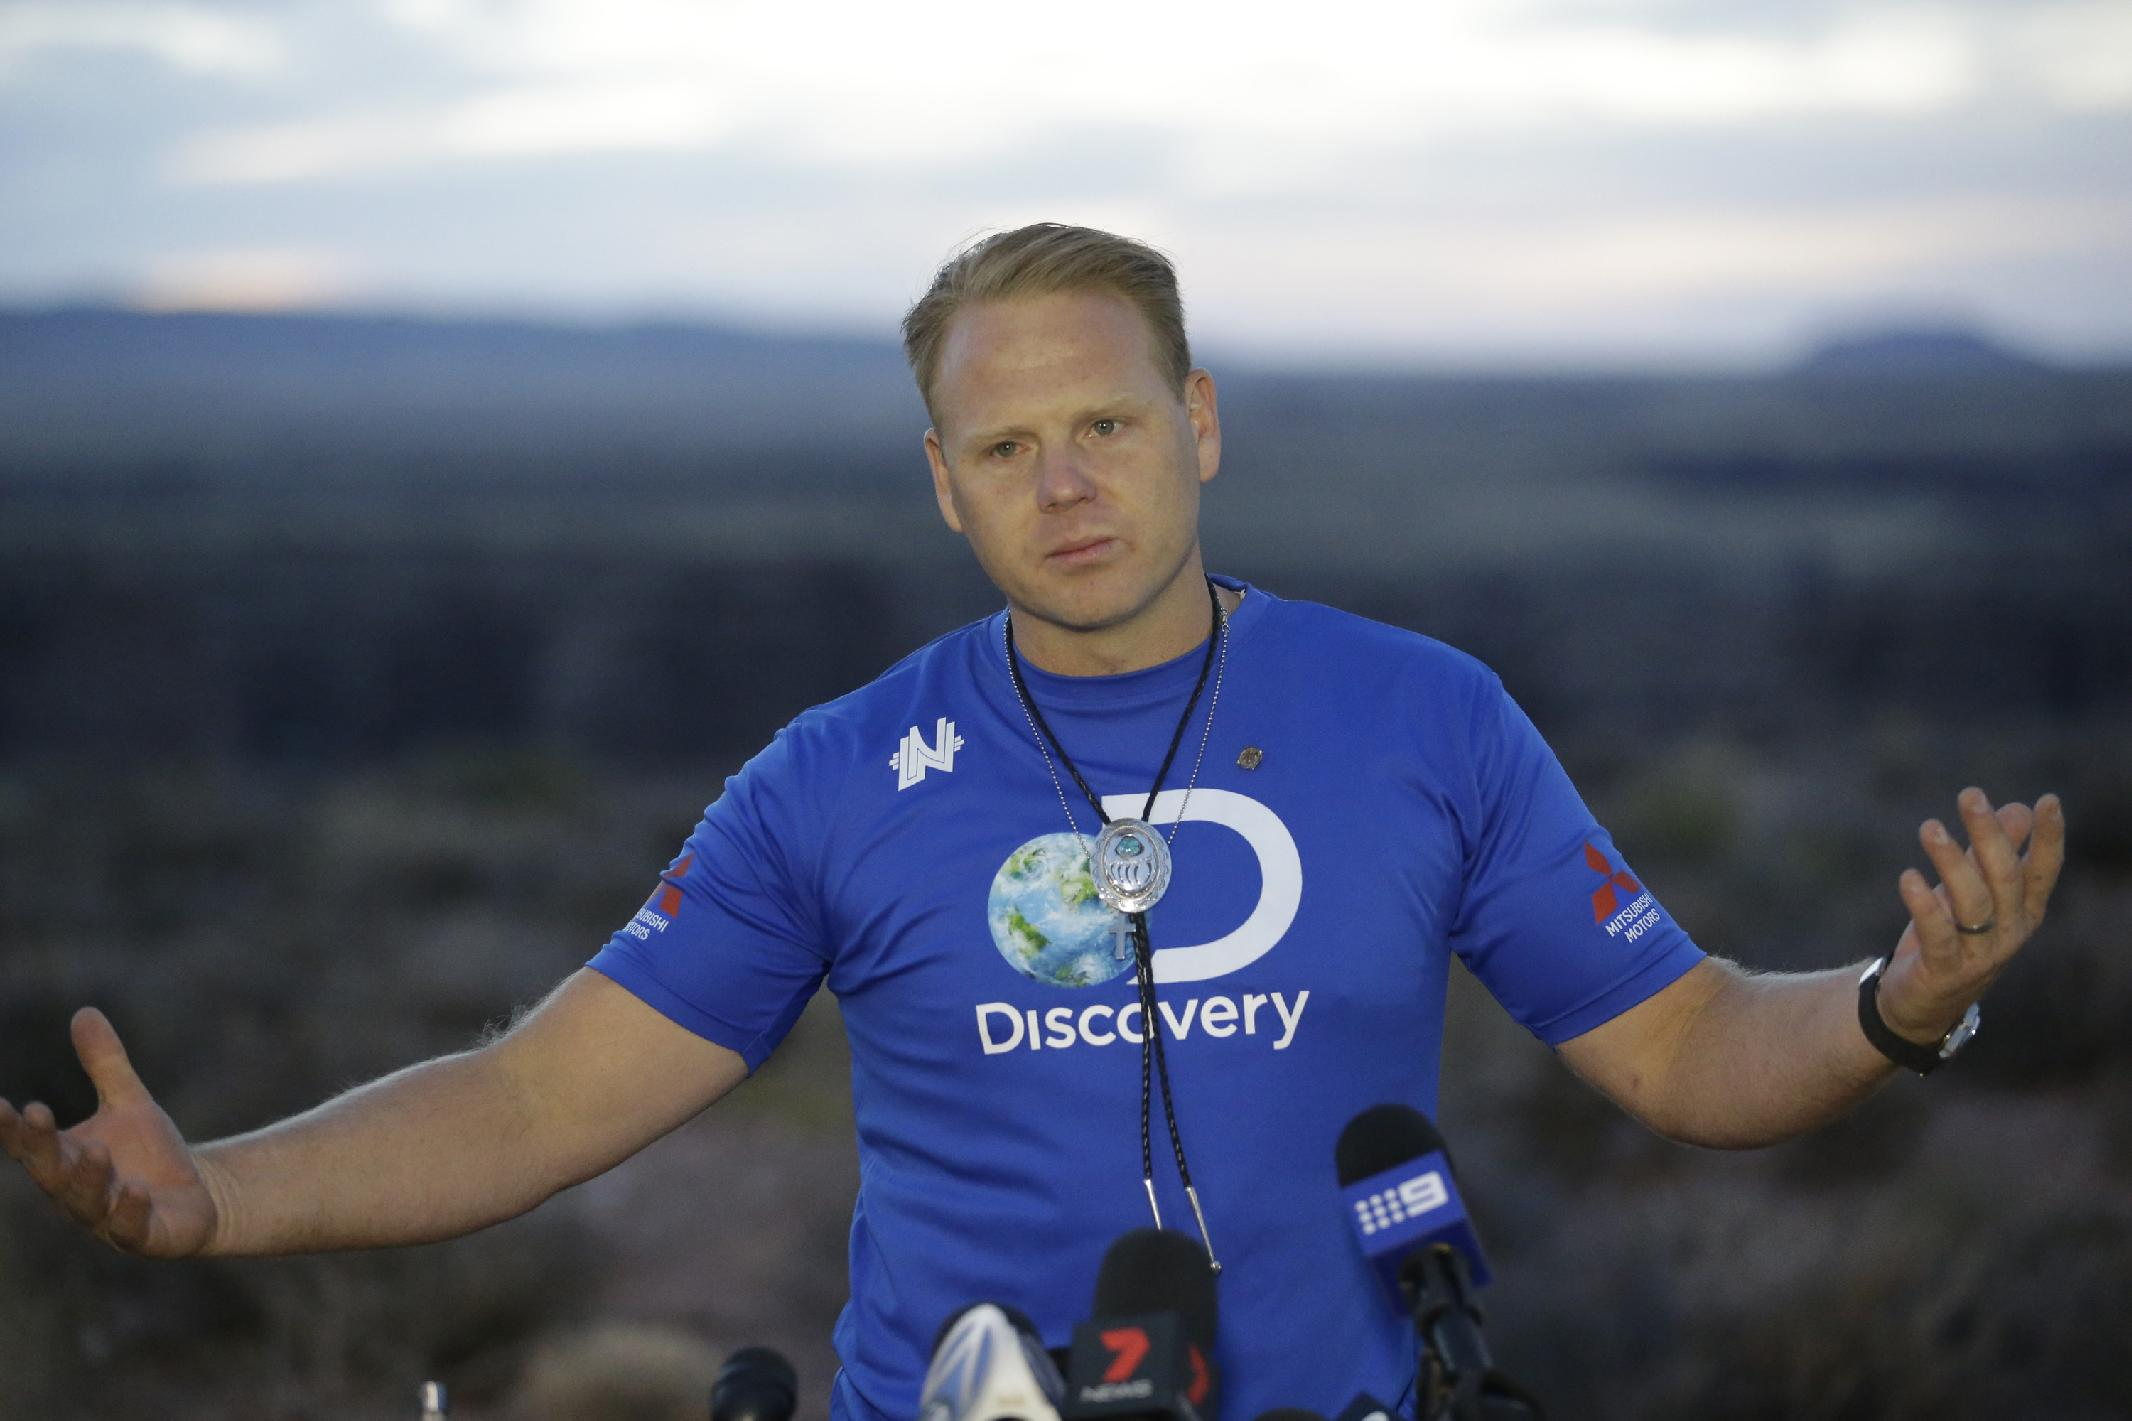 Nik Wallenda at a news conference after the Grand Canyon on Sunday, June 23, 2013. (AP Photo/Rick Bowmer)